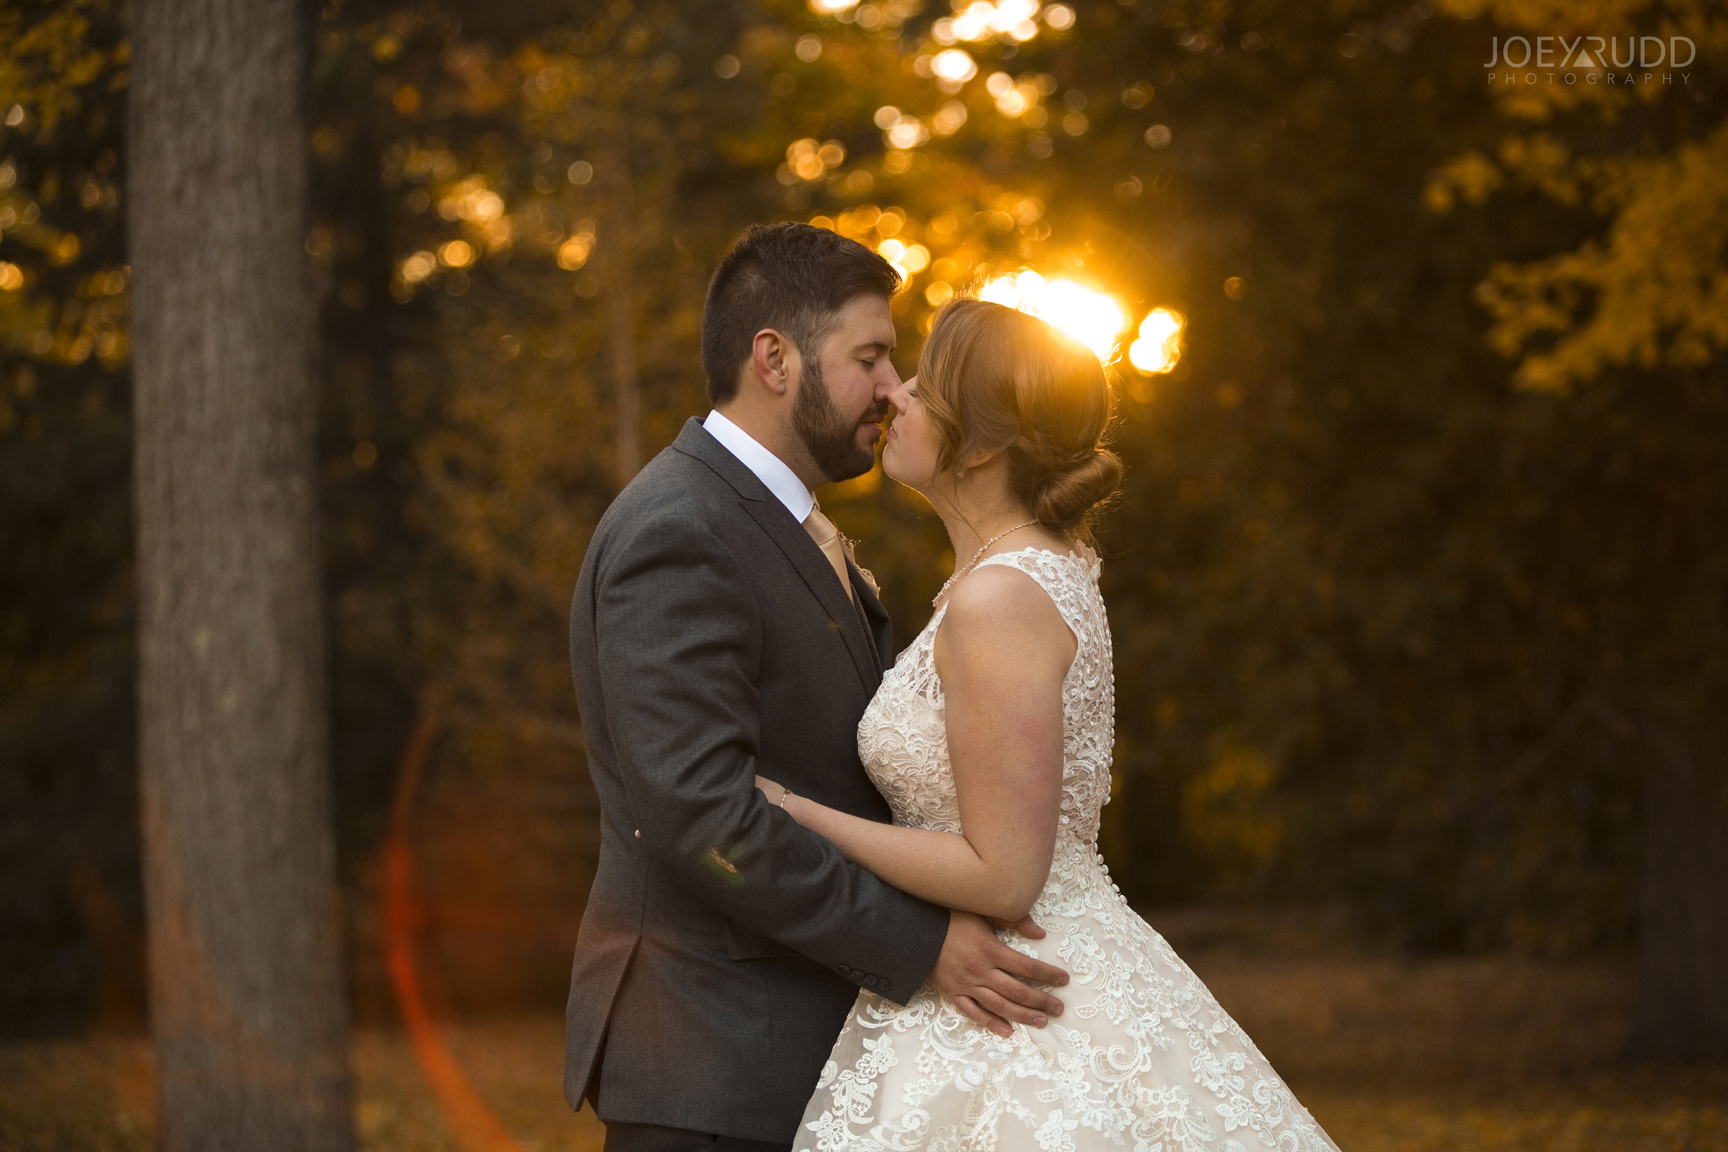 Ottawa Wedding Photographer Joey Rudd Photography Strathmere